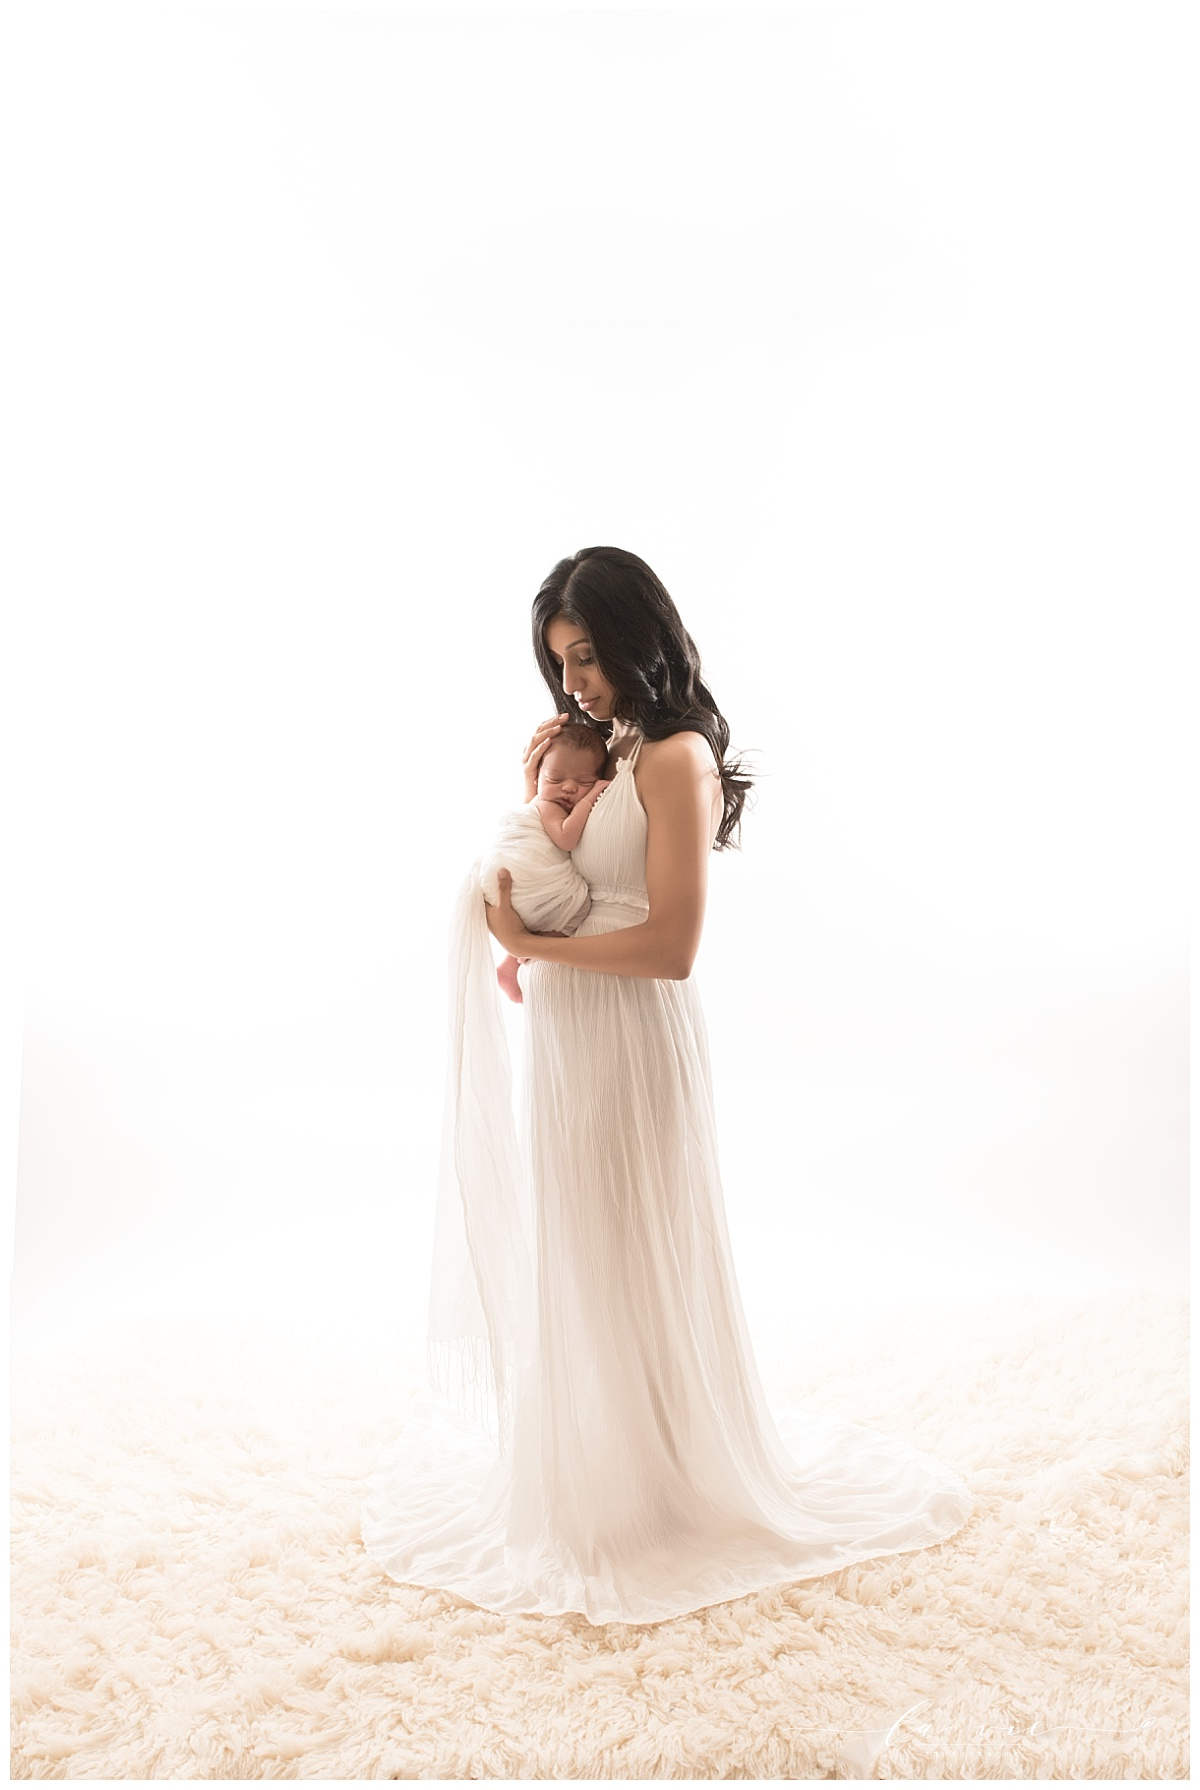 Ethereal mom and baby newborn portrait